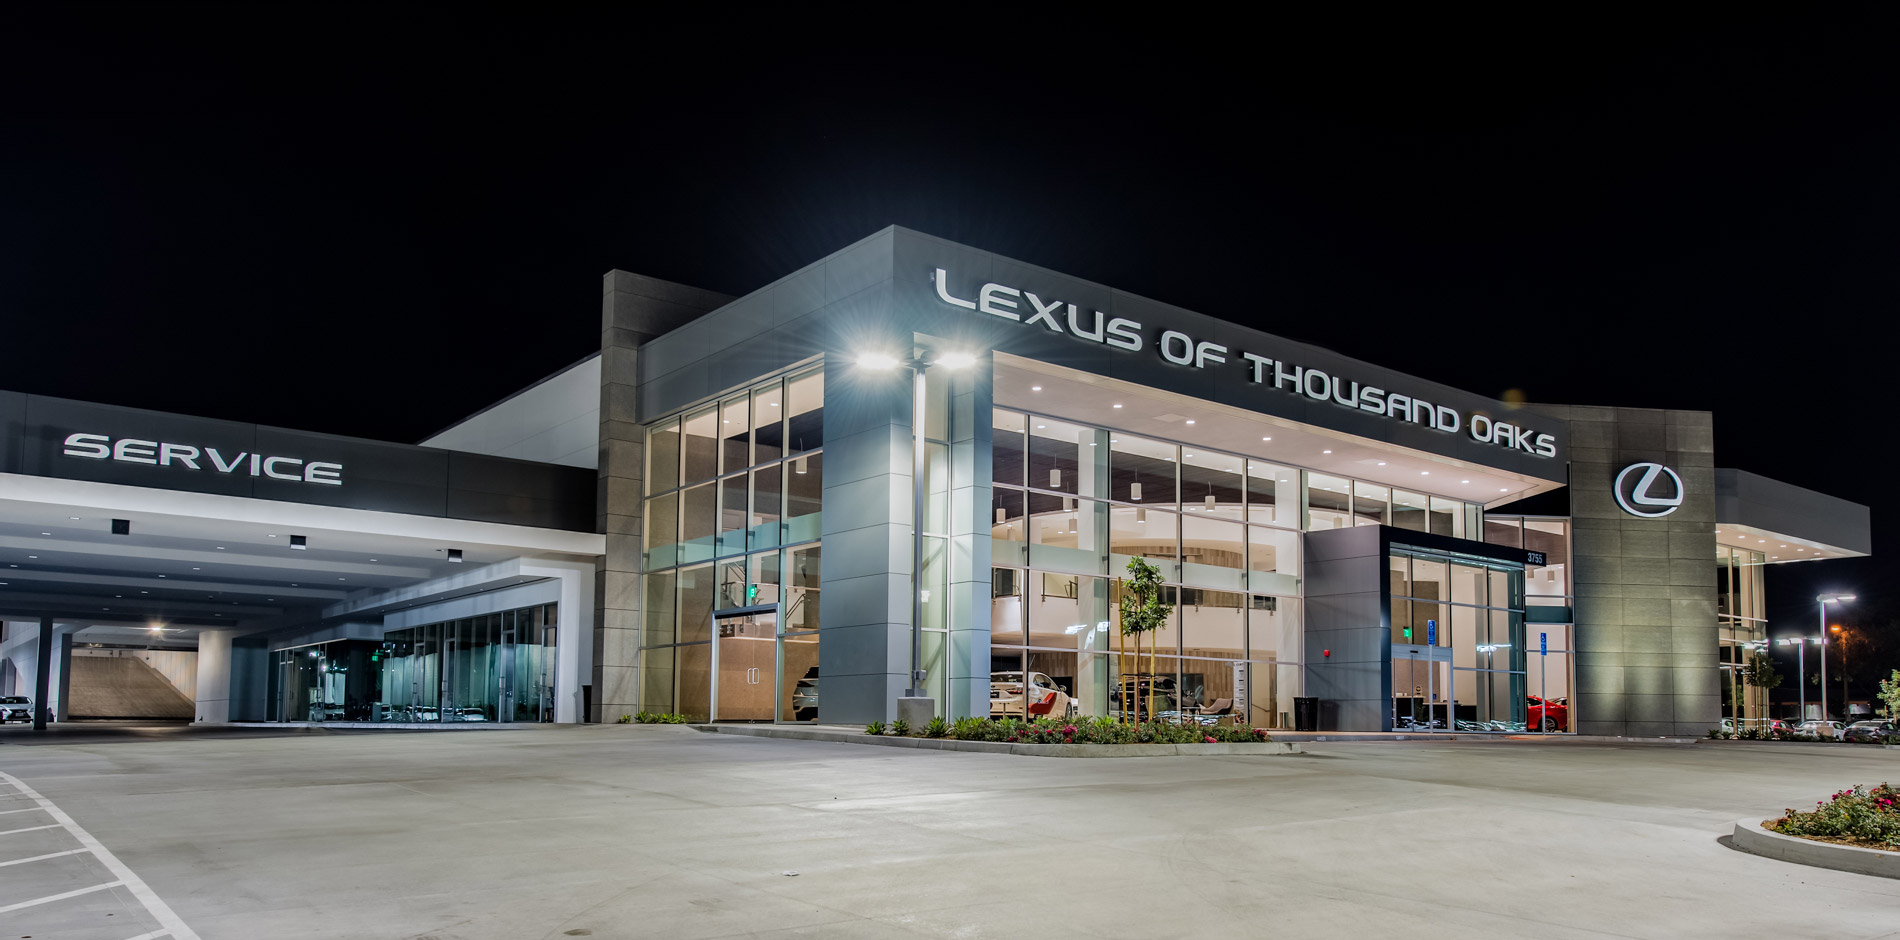 Lexus Dealership Pre-Construction and Construction Management